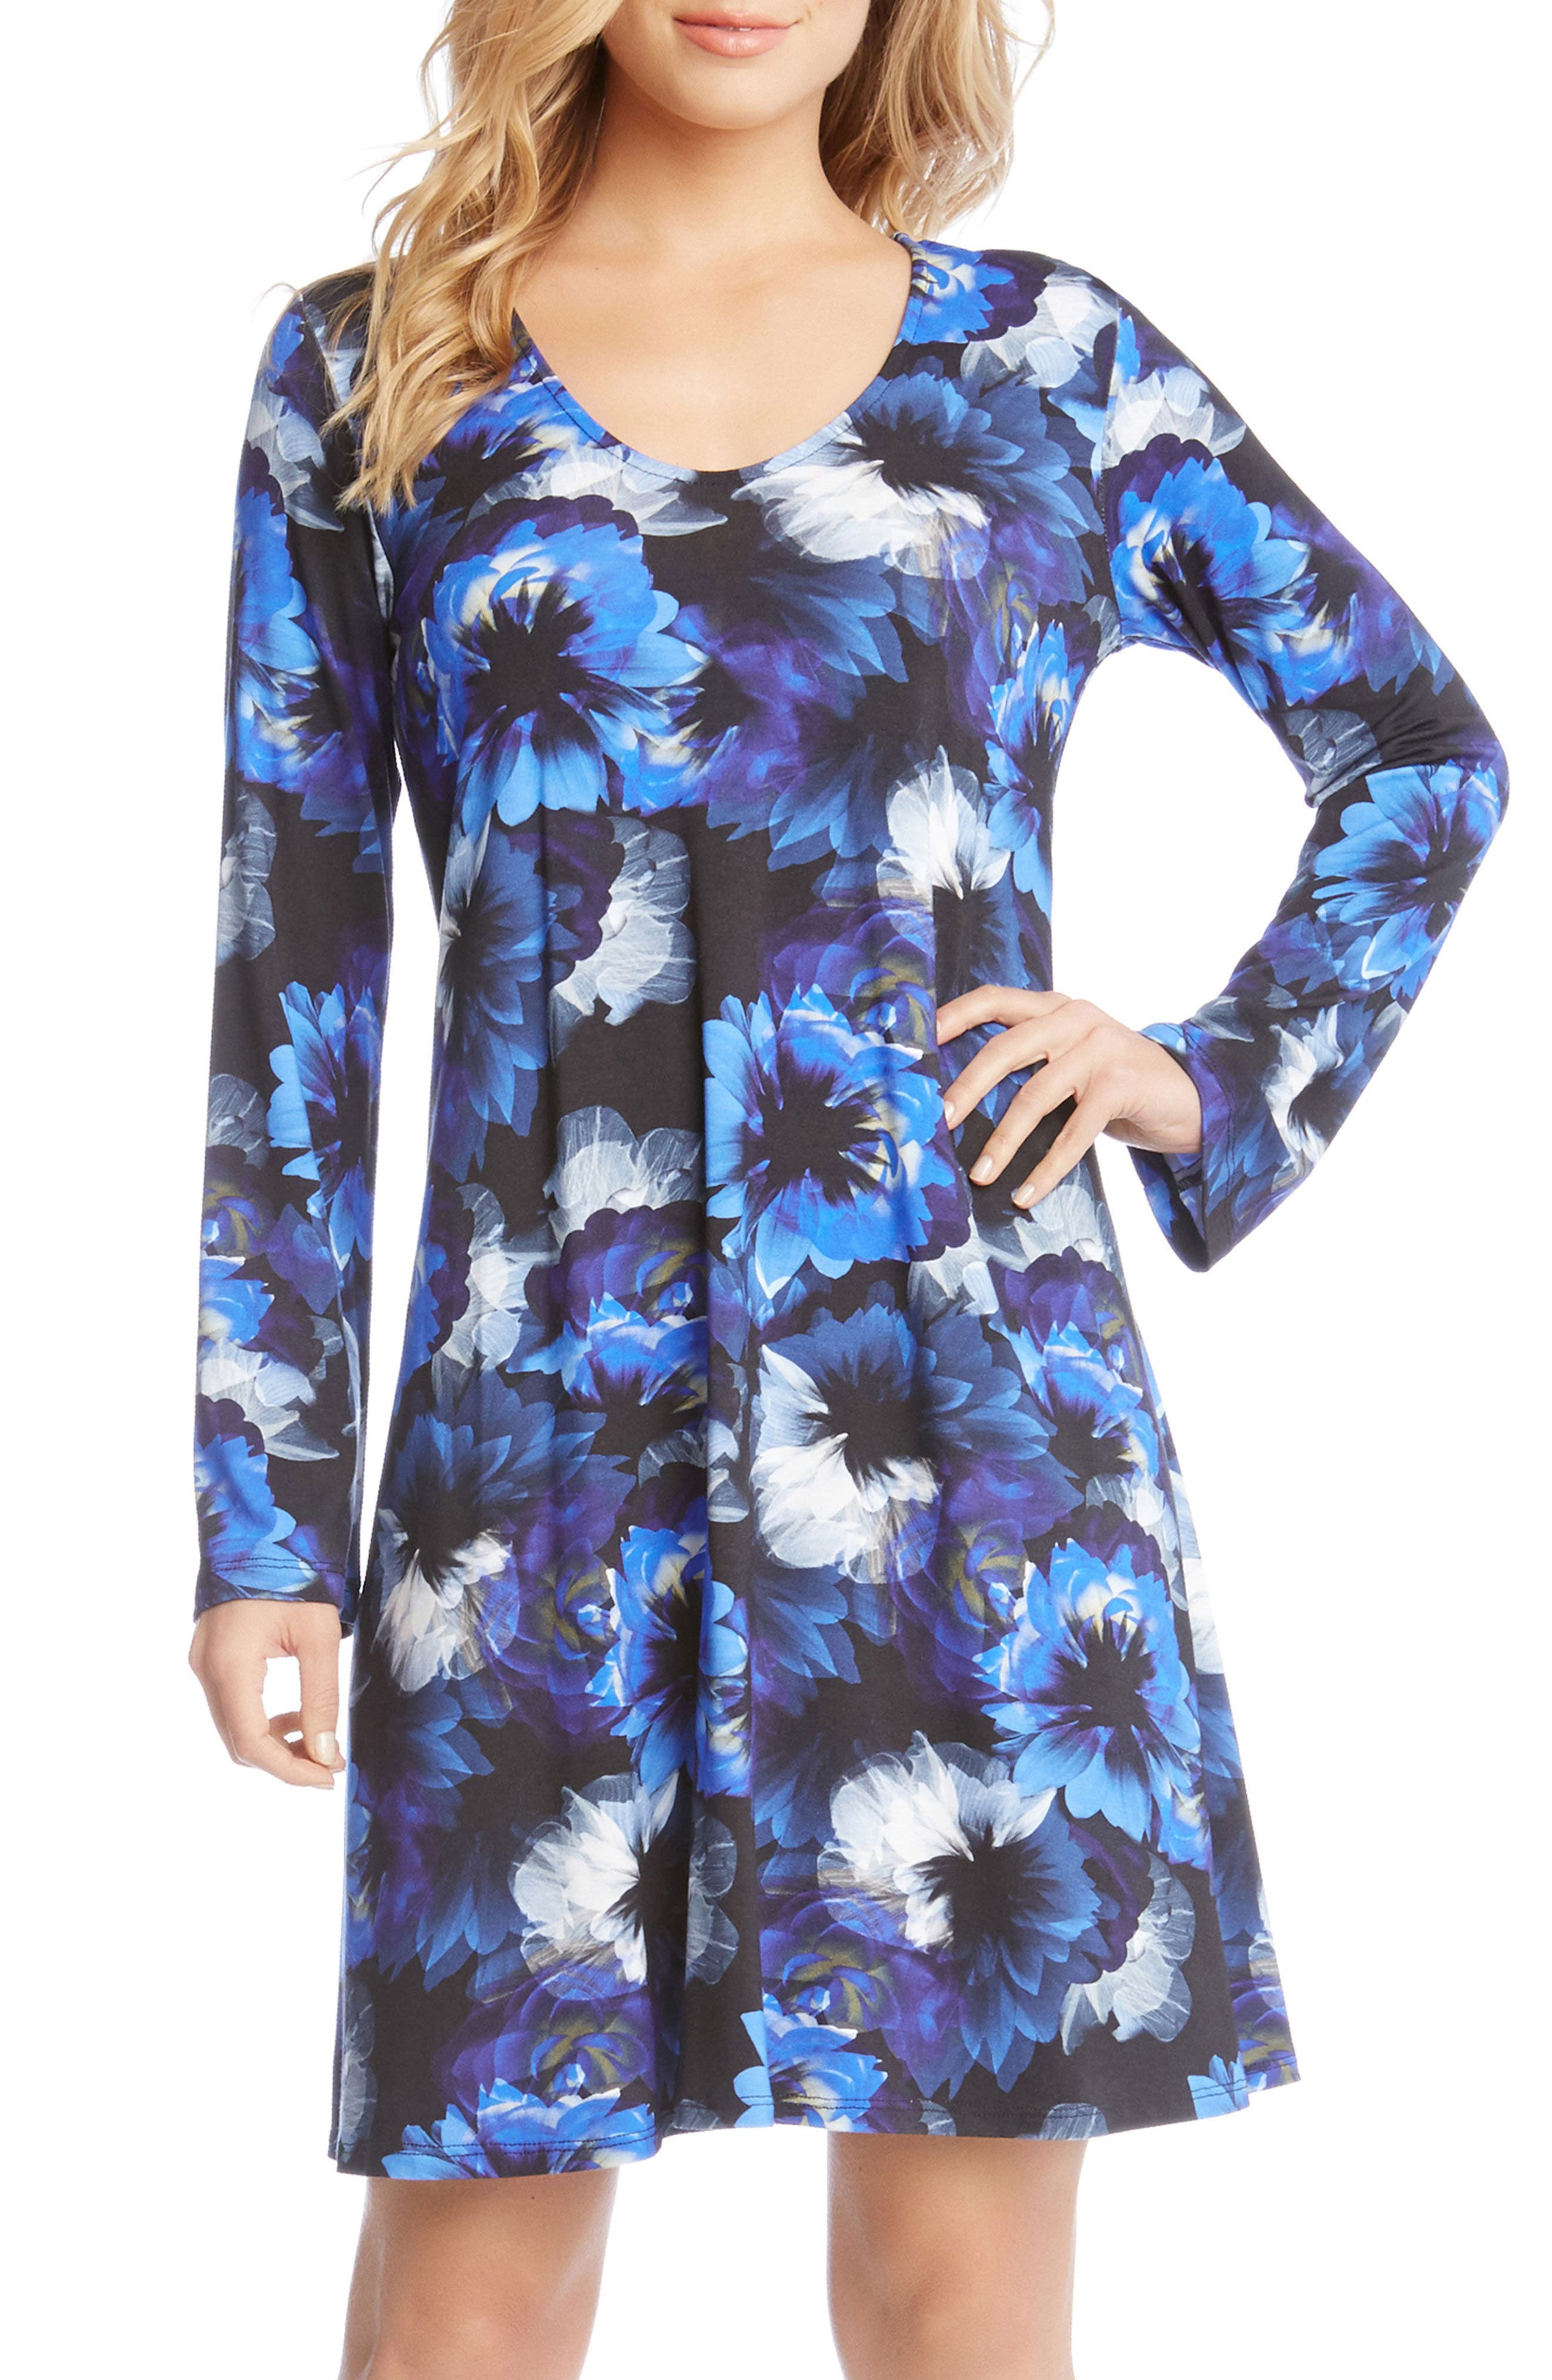 Taylor Midnight Floral Print A-Line Dress,                         Main,                         color, Sapphire Blue